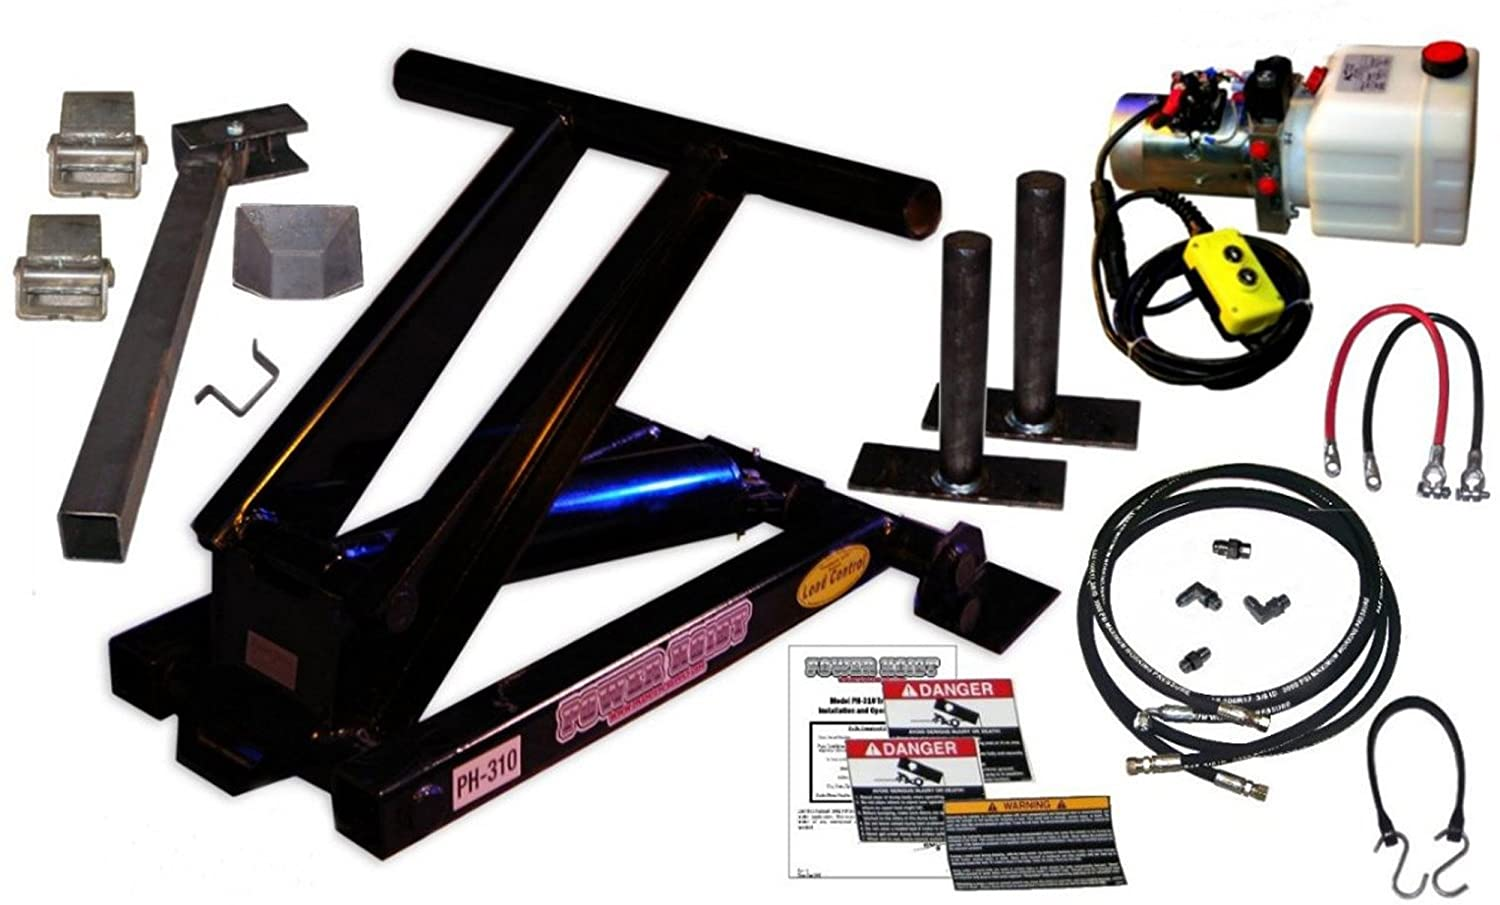 The PH310 Hydraulic Dump Kit from Power Hoist can lift a maximum of 6,000 lbs. of load.